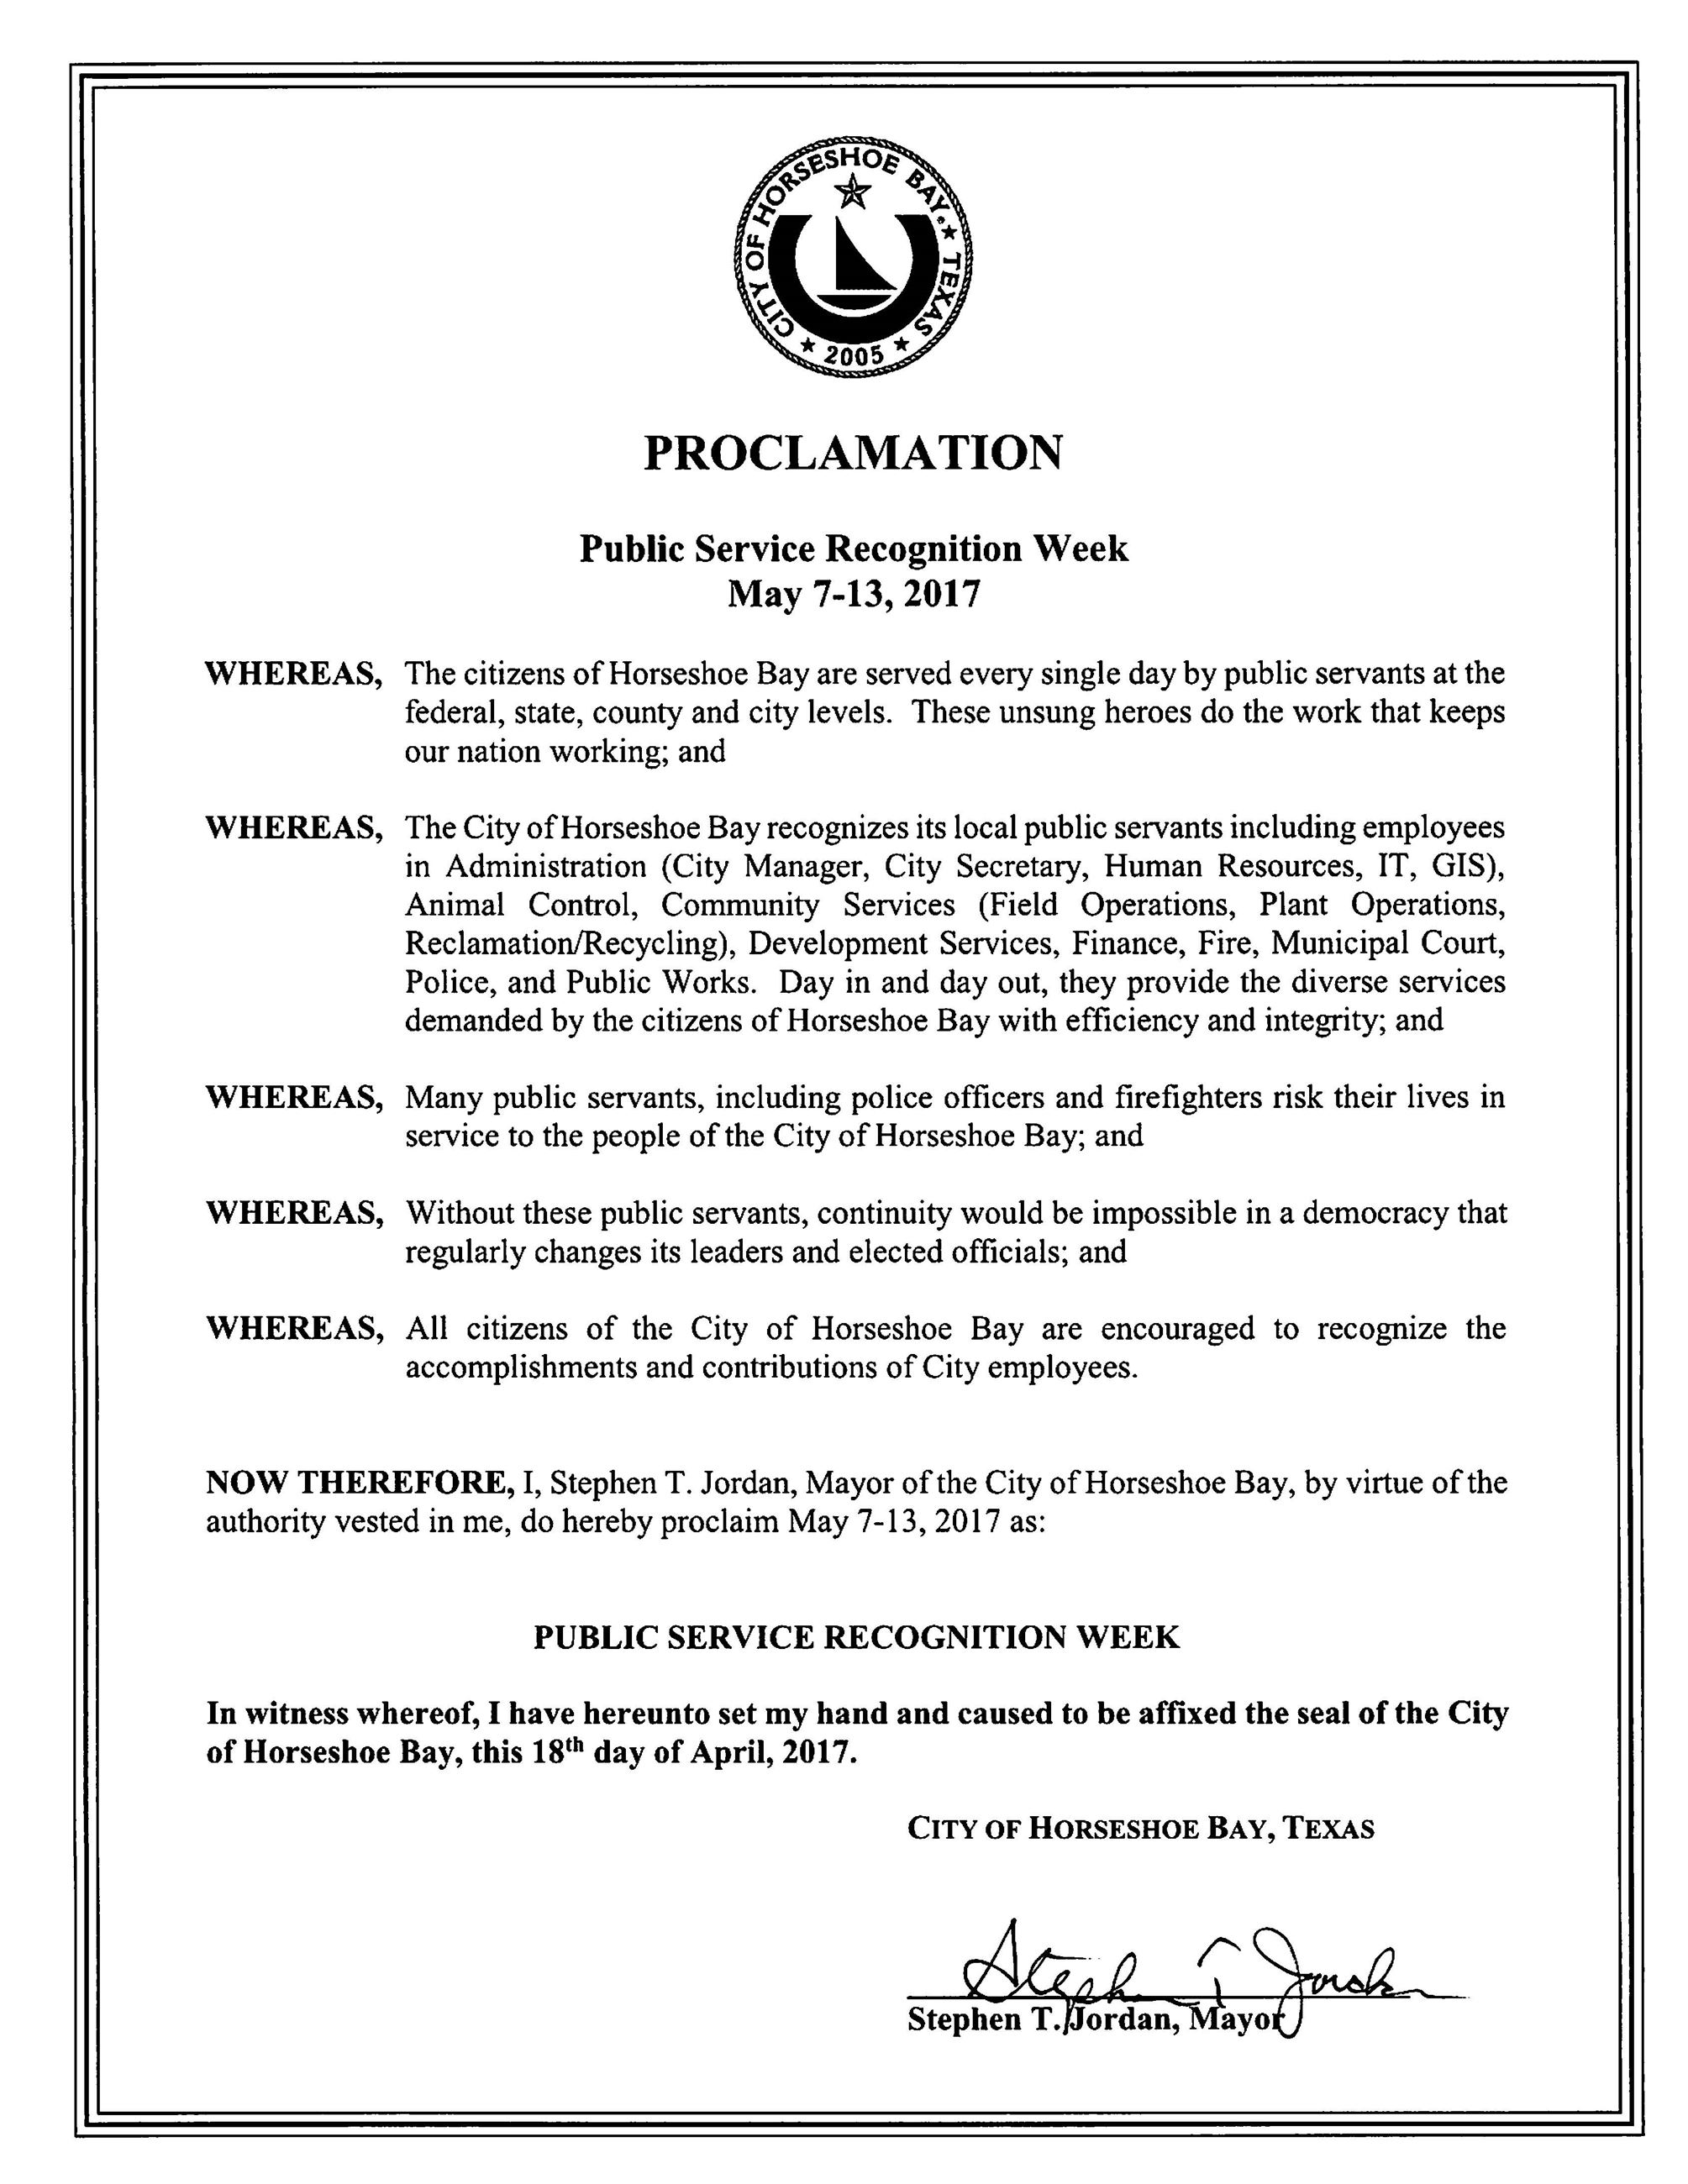 2017 May 7-13 Public Service Recognition Week 04.18.2017